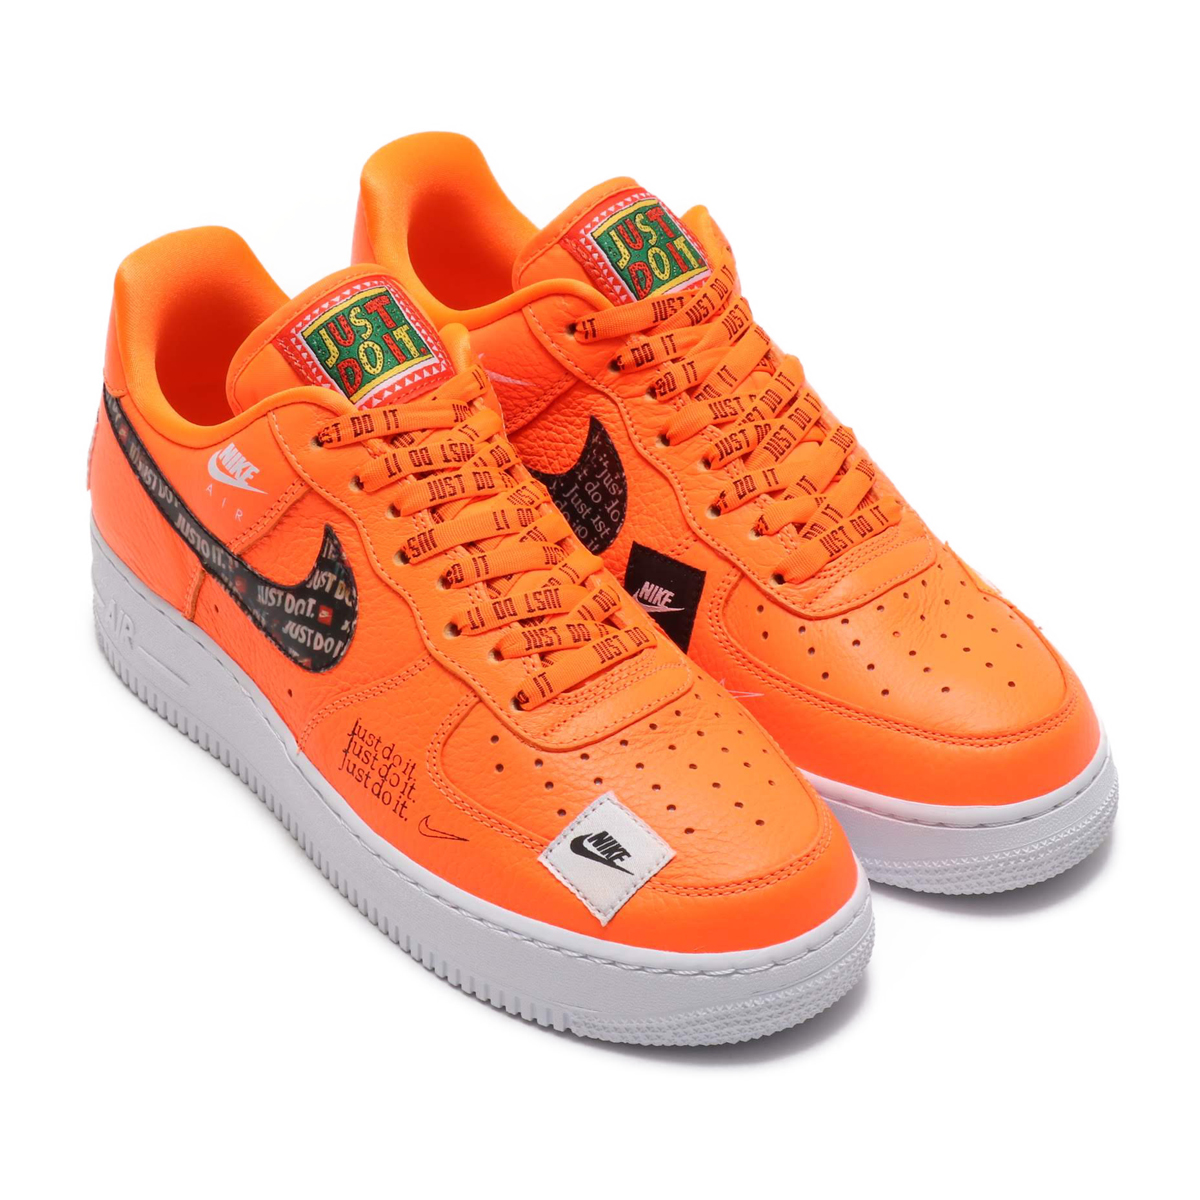 25bfd18d4a38 NIKE AIR FORCE 1  07 PRM JDI (Nike air force 1 07 premium JDI) TOTAL ORANGE TOTAL  ORANGE-BLACK-WHITE 18FA-S